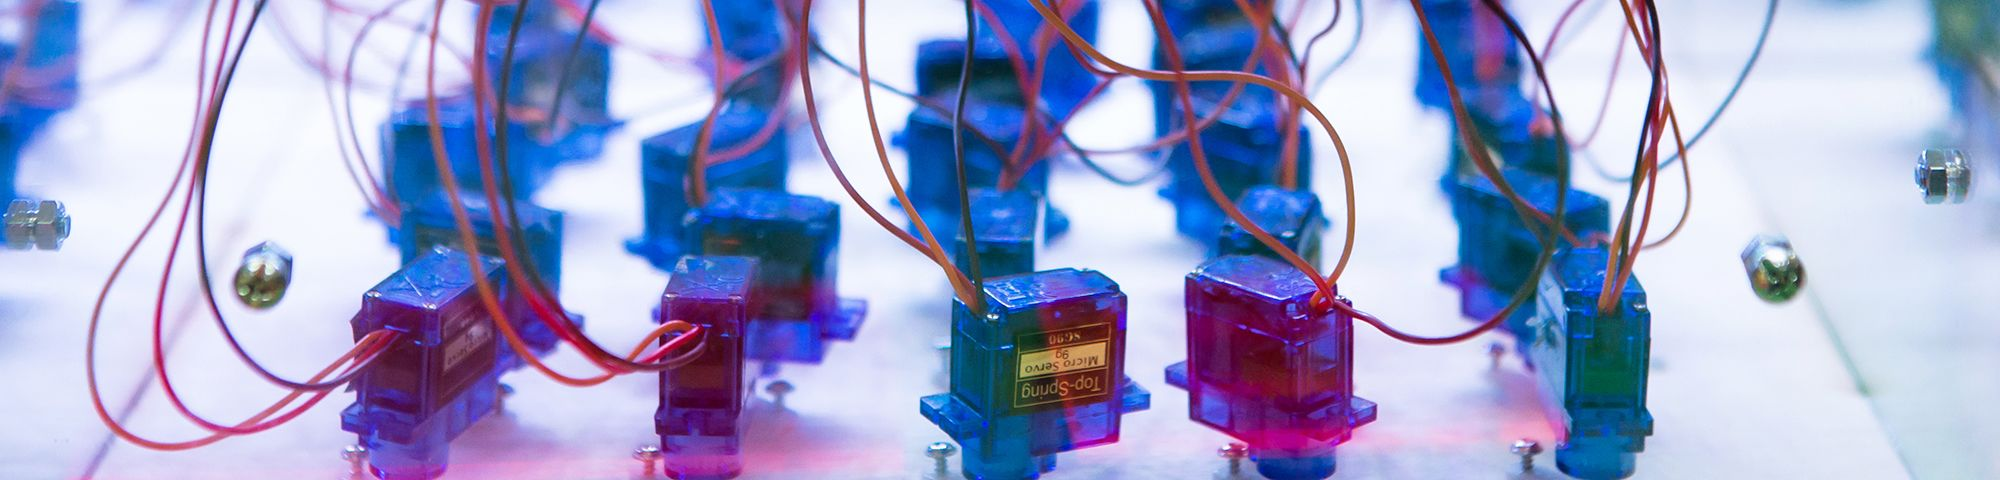 A grid of turquoise and pink electrical cubes with pink wires coming out of them.